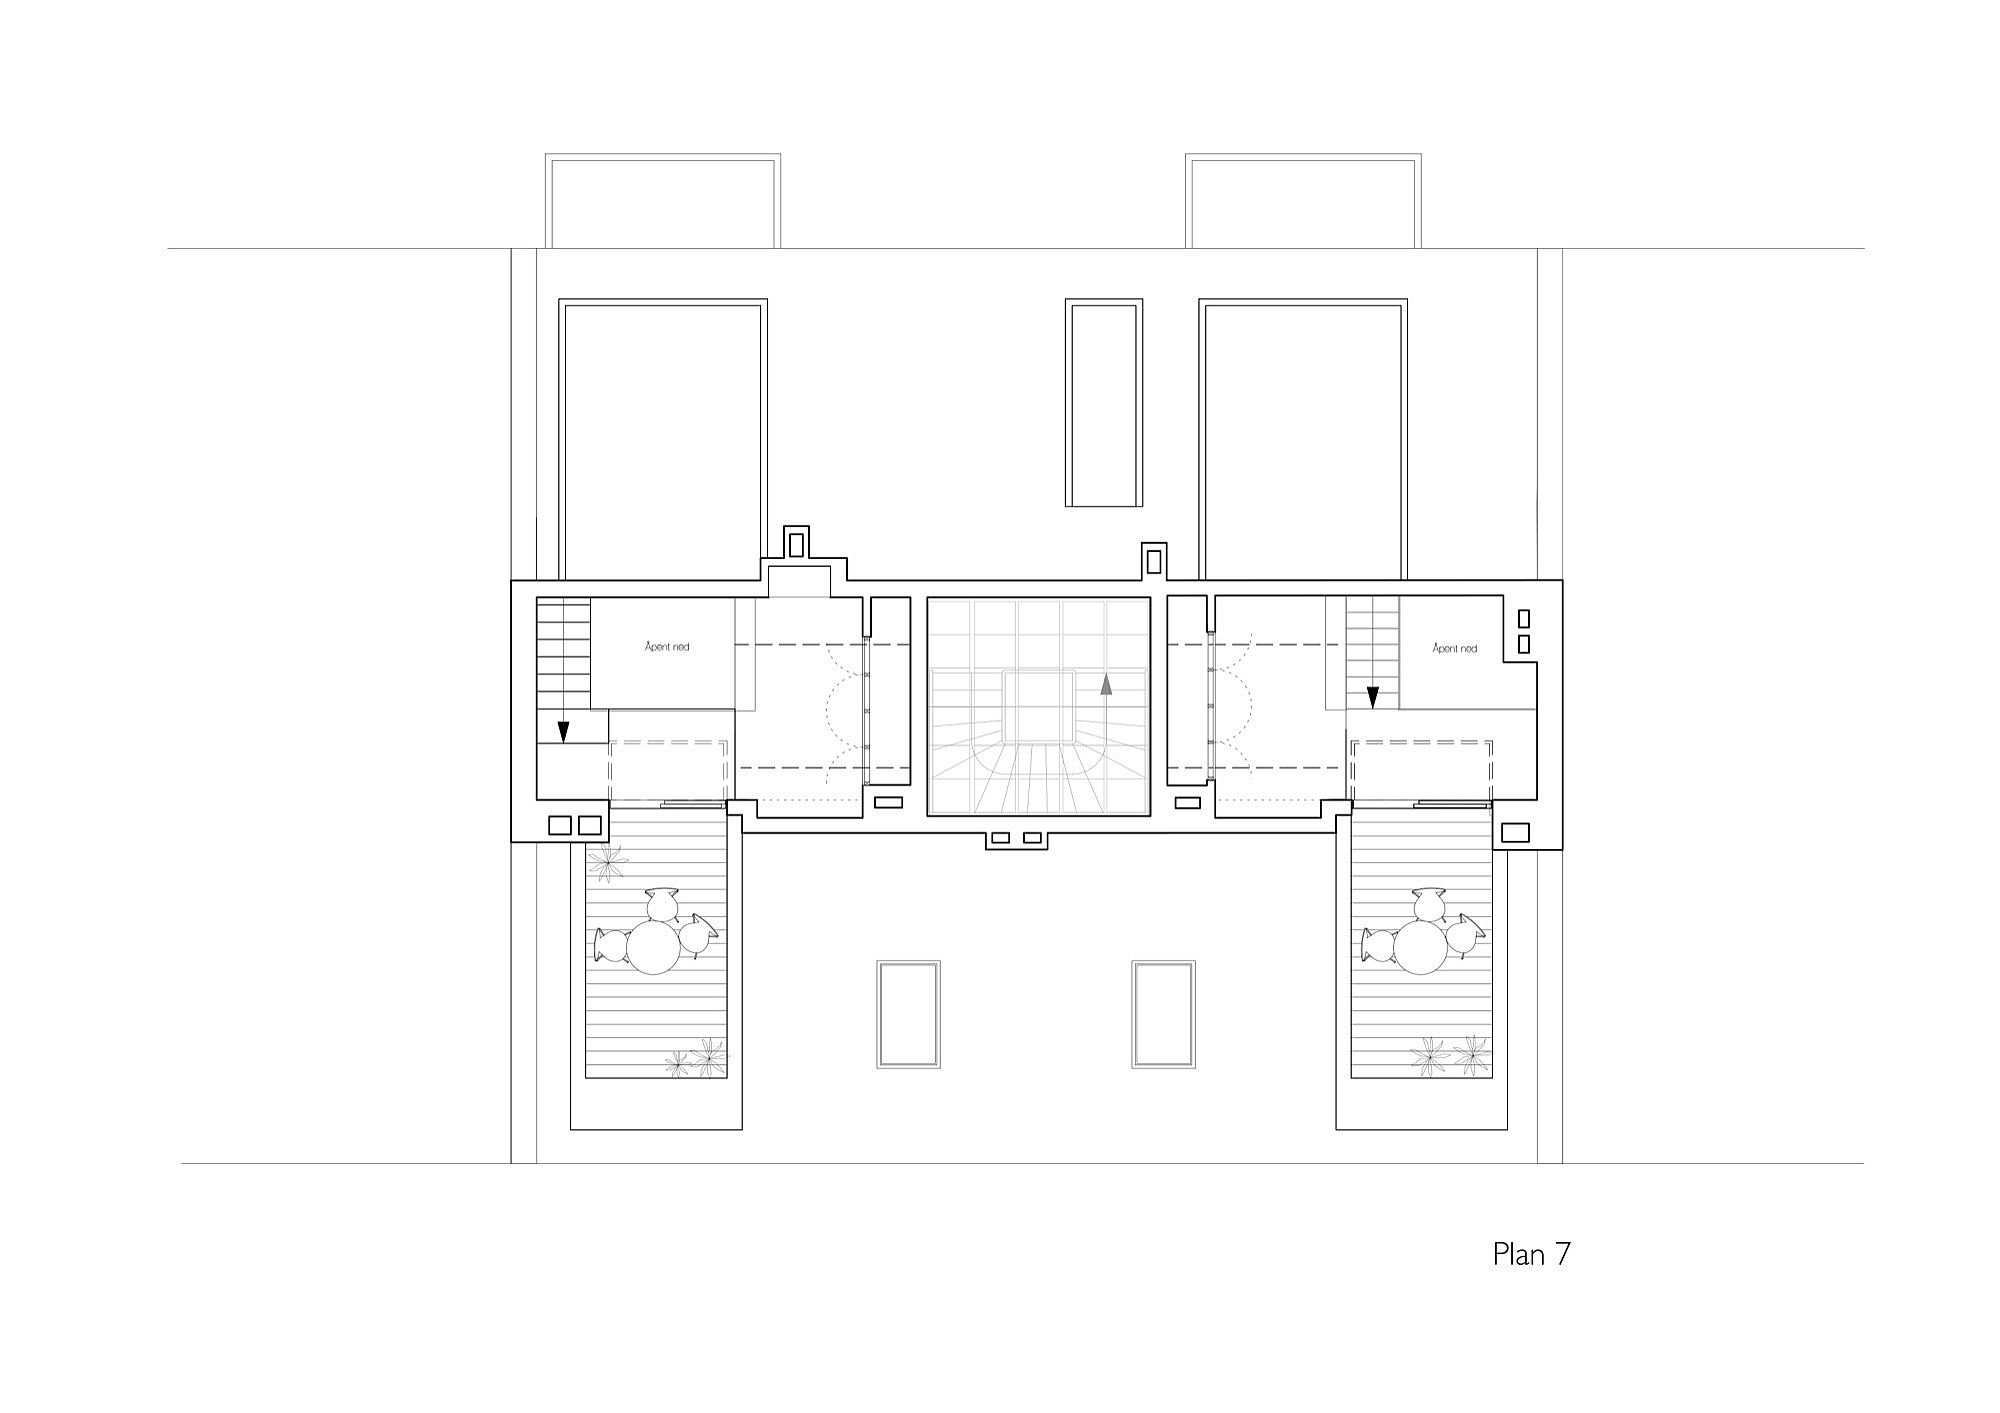 Upper level floor plan of the apartments